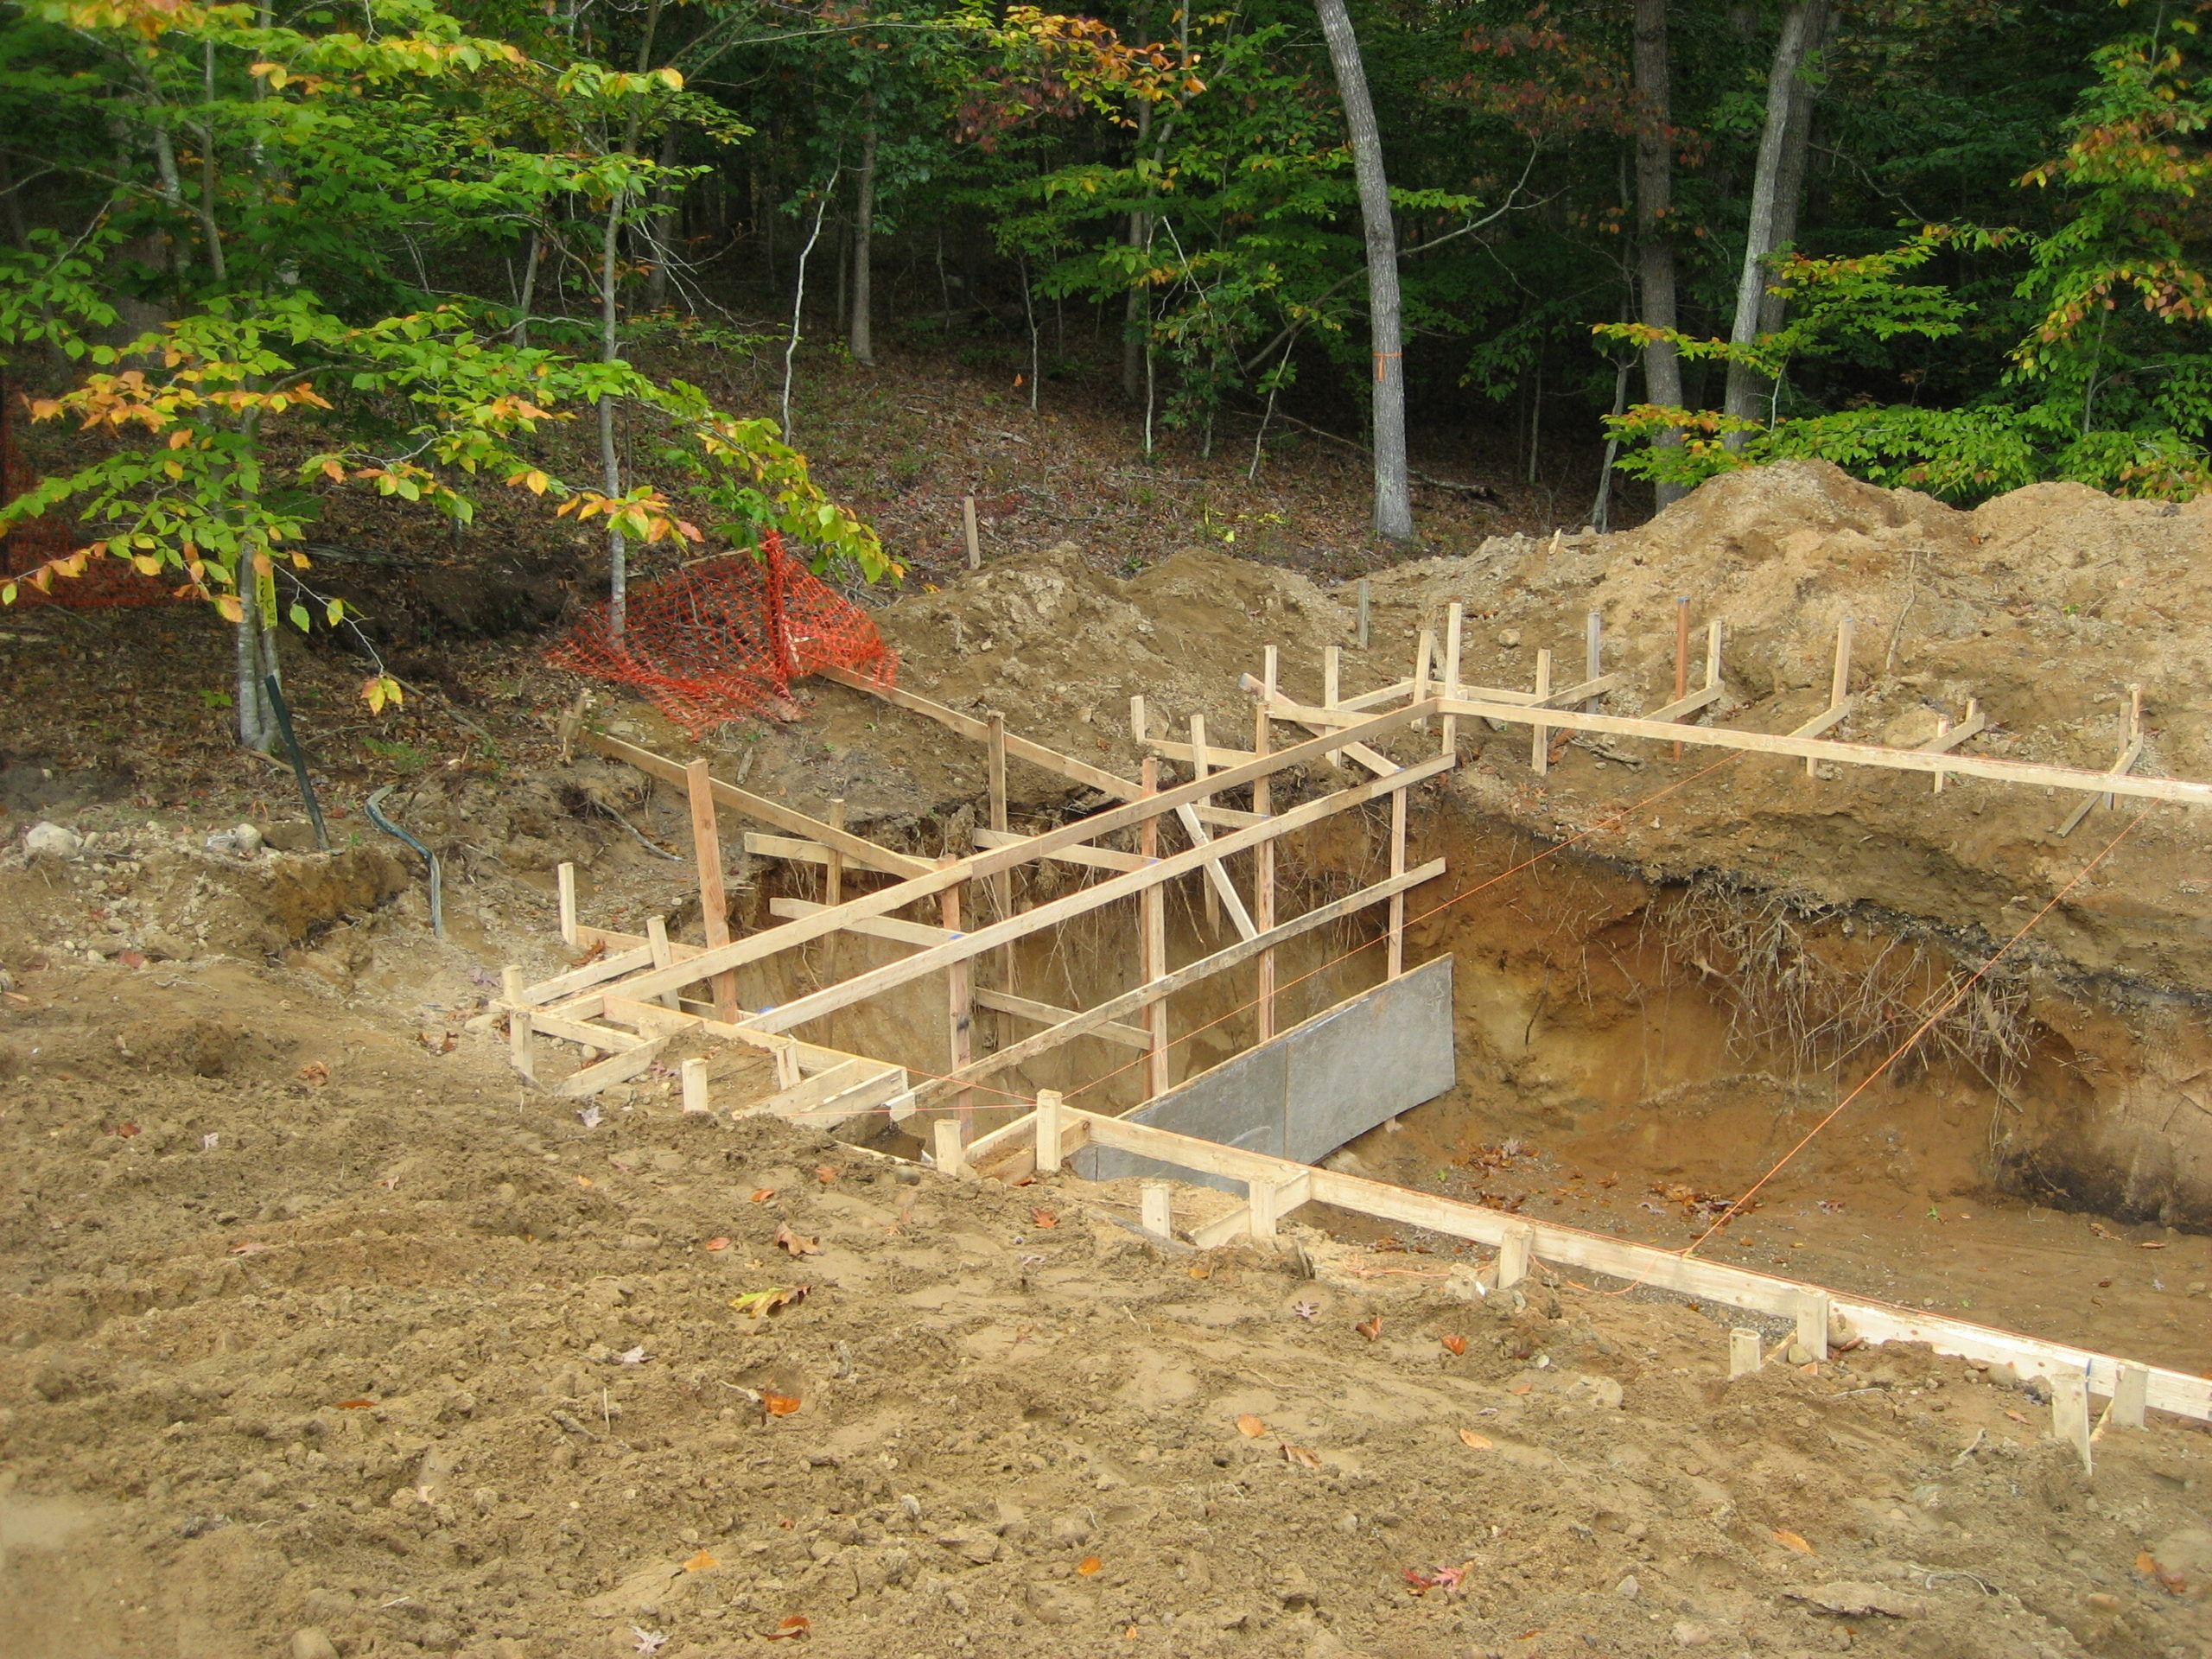 Work begins on the kettle hole house in 2006.